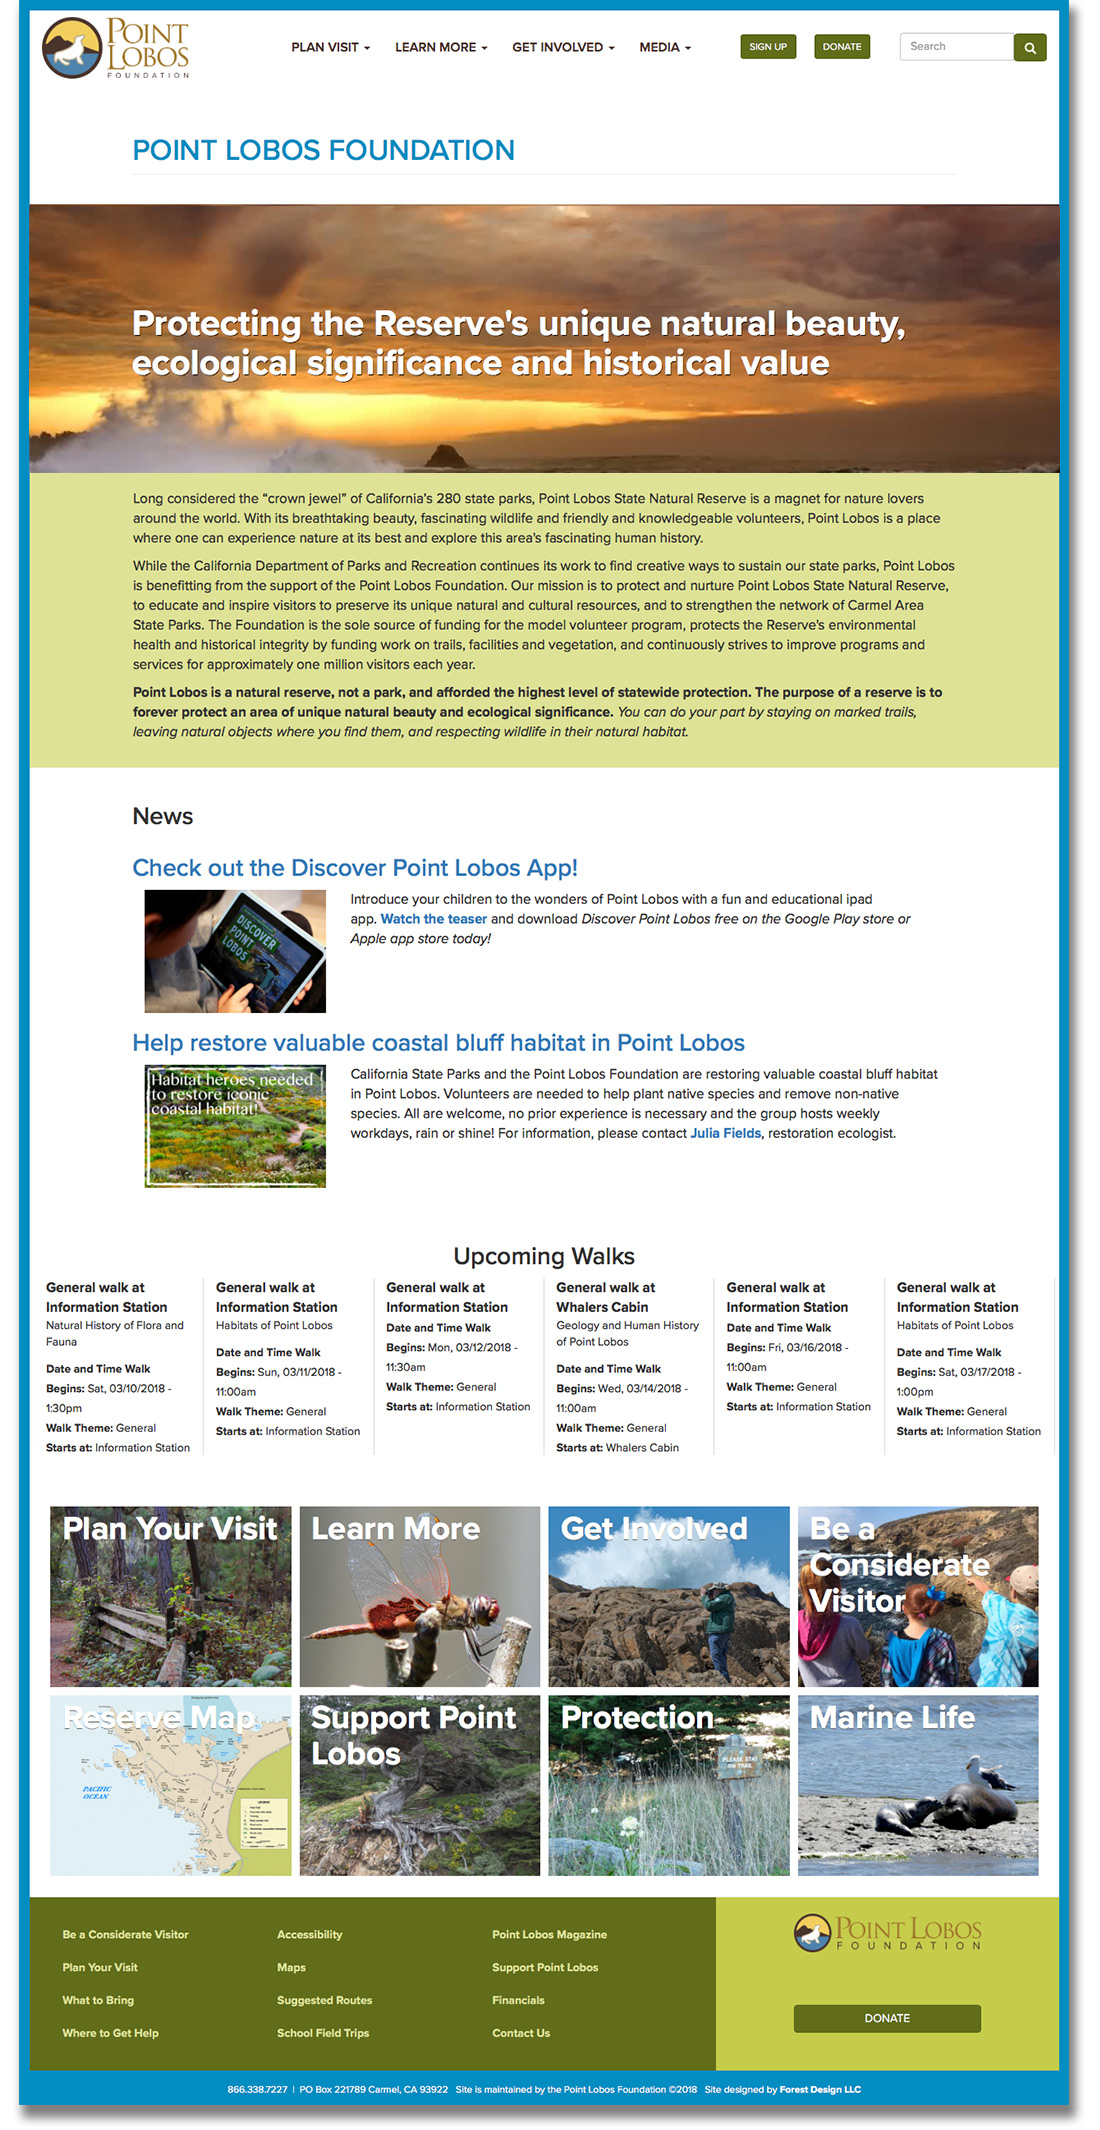 screenshot of Point Lobos Foundation website